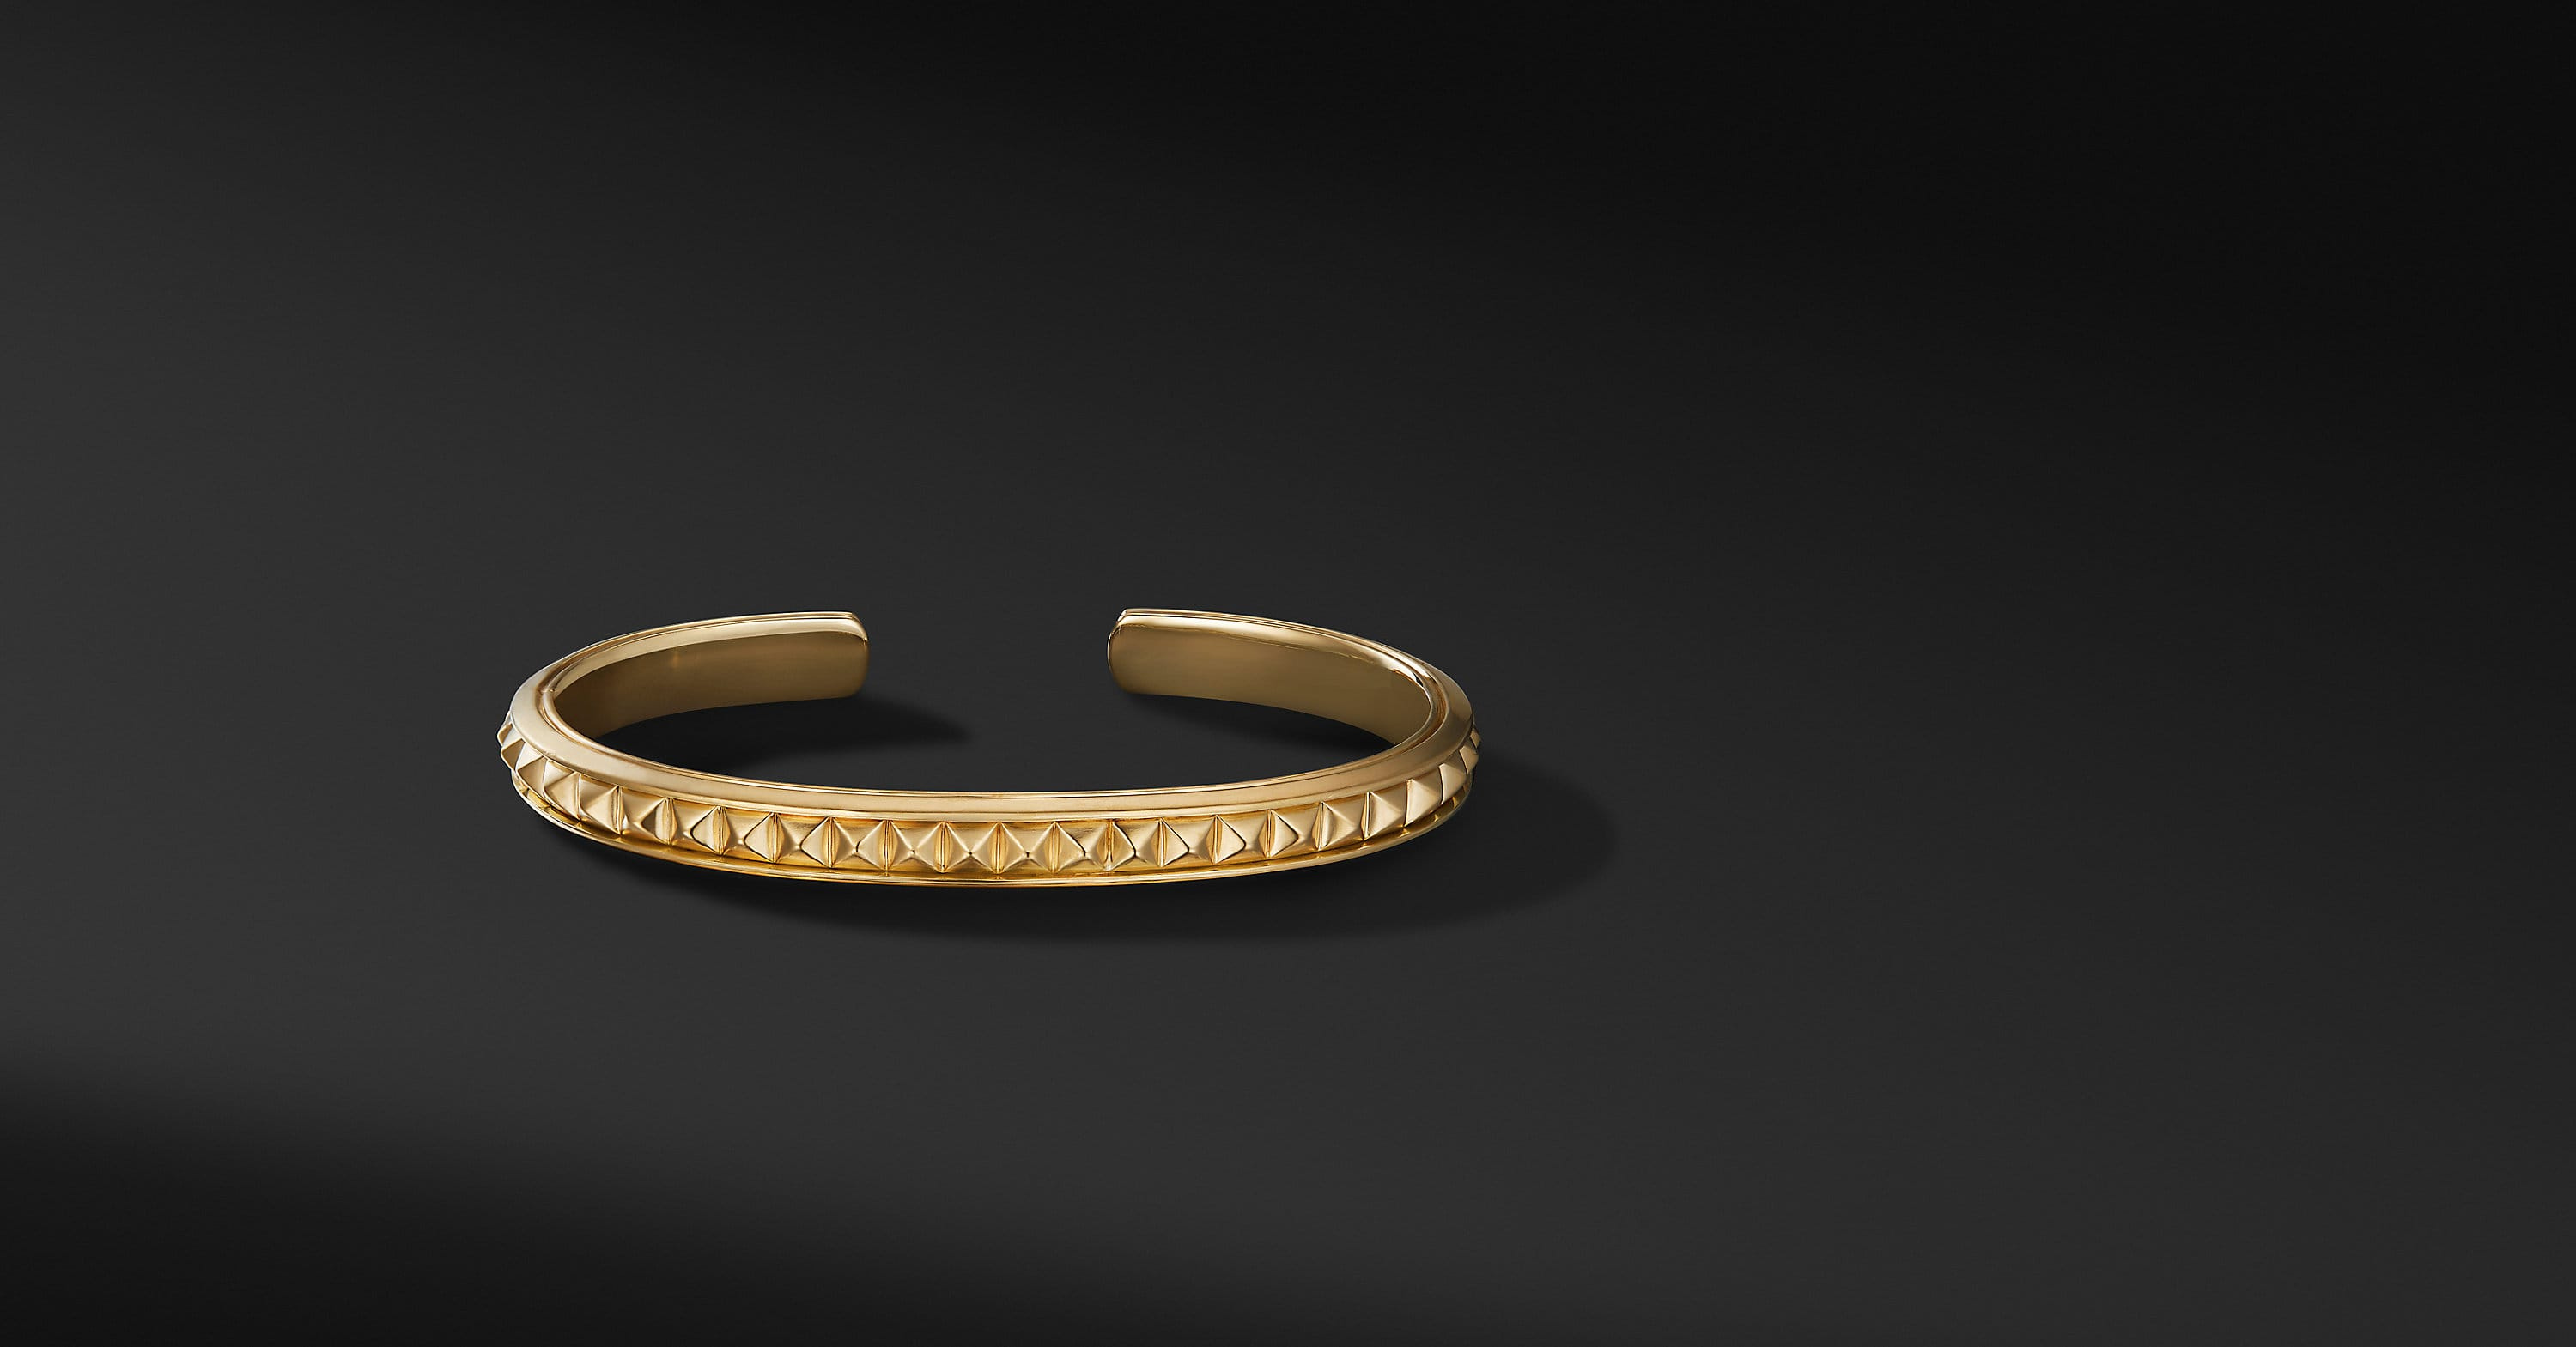 Pyramid Cuff Bracelet in 18K Yellow Gold, 7mm